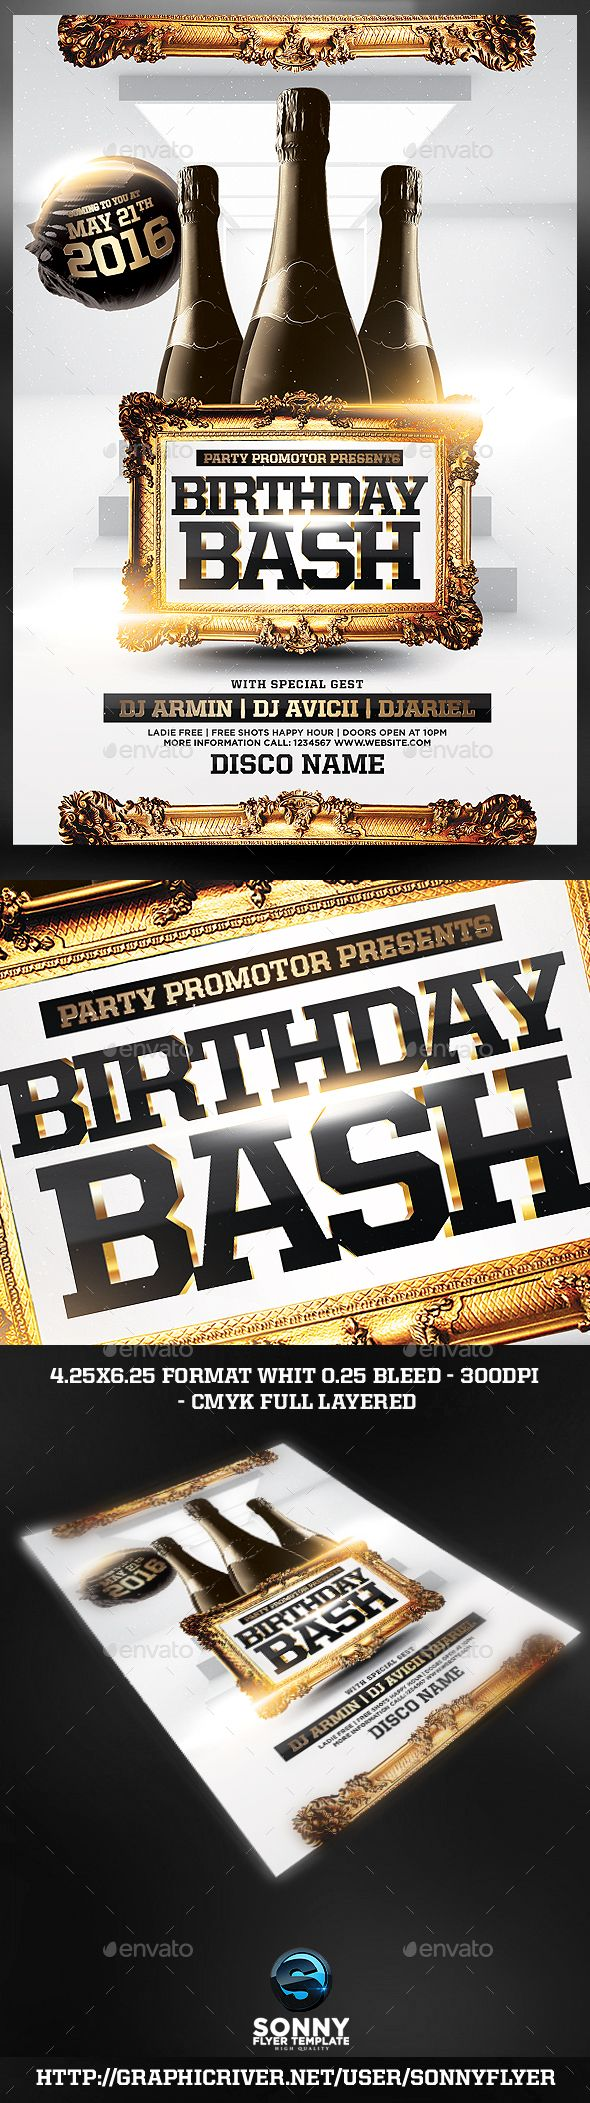 pin by seesesoosougib on architecture flyer template party flyer